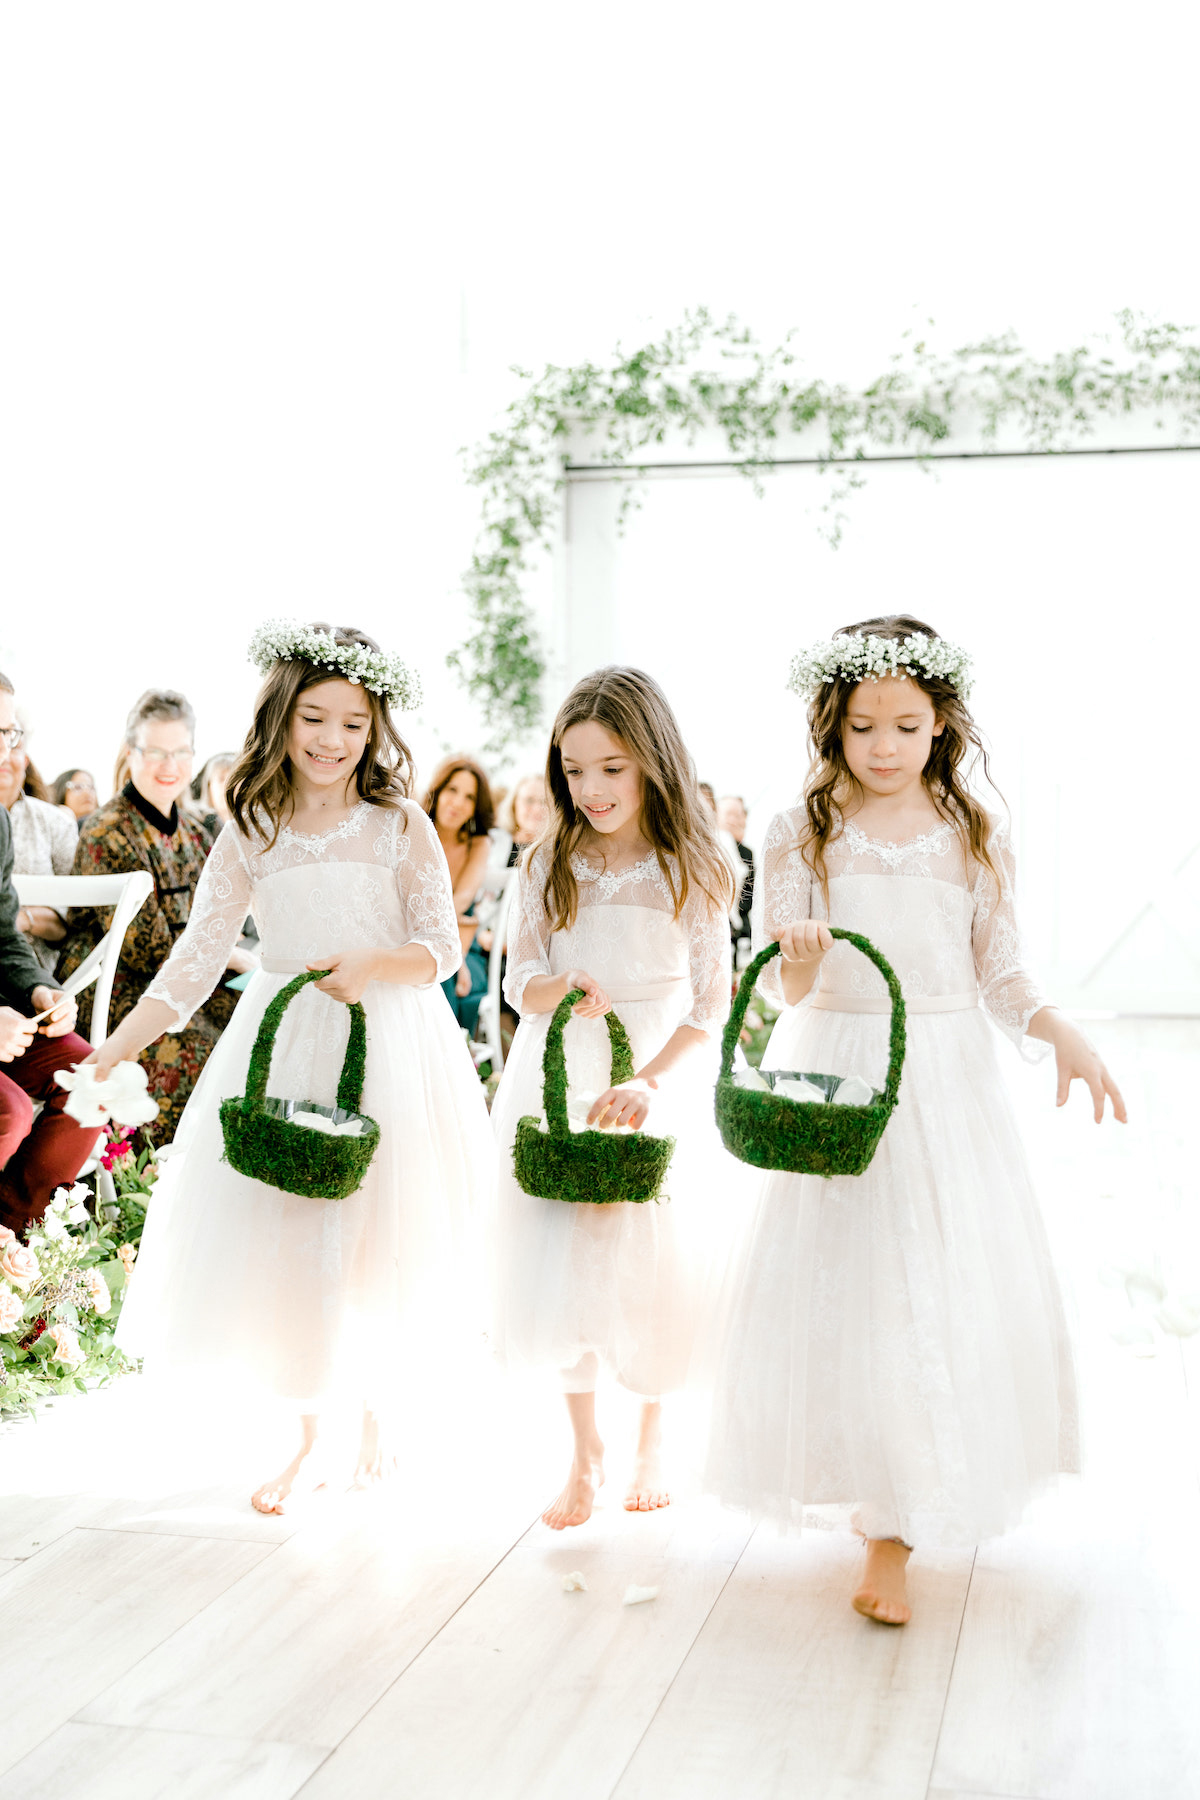 flower girls in white with grass baskets walking down aisle